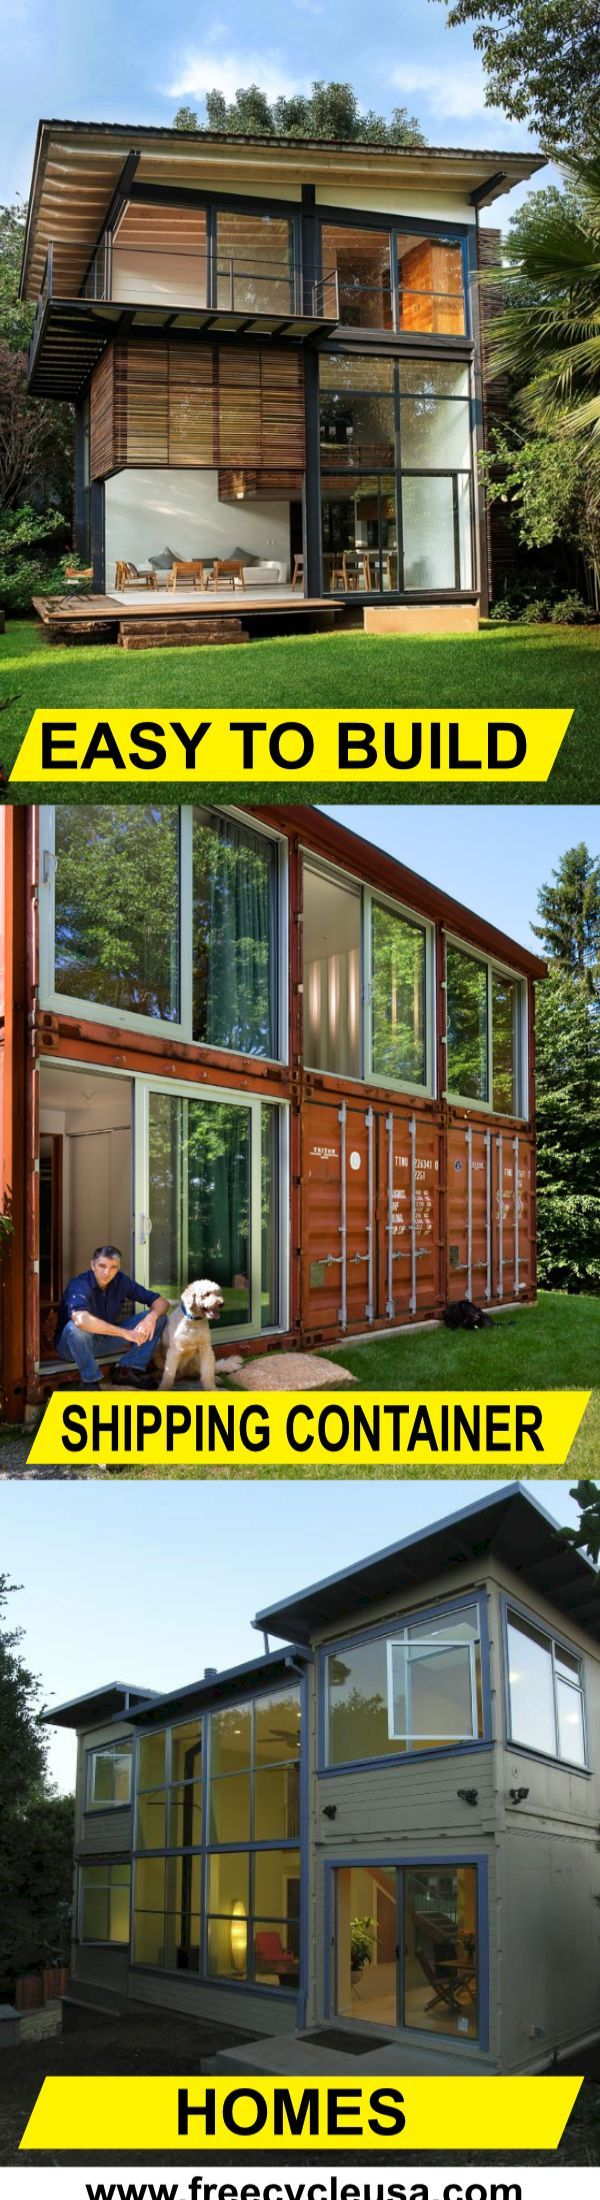 Lean how to build a Shipping Container